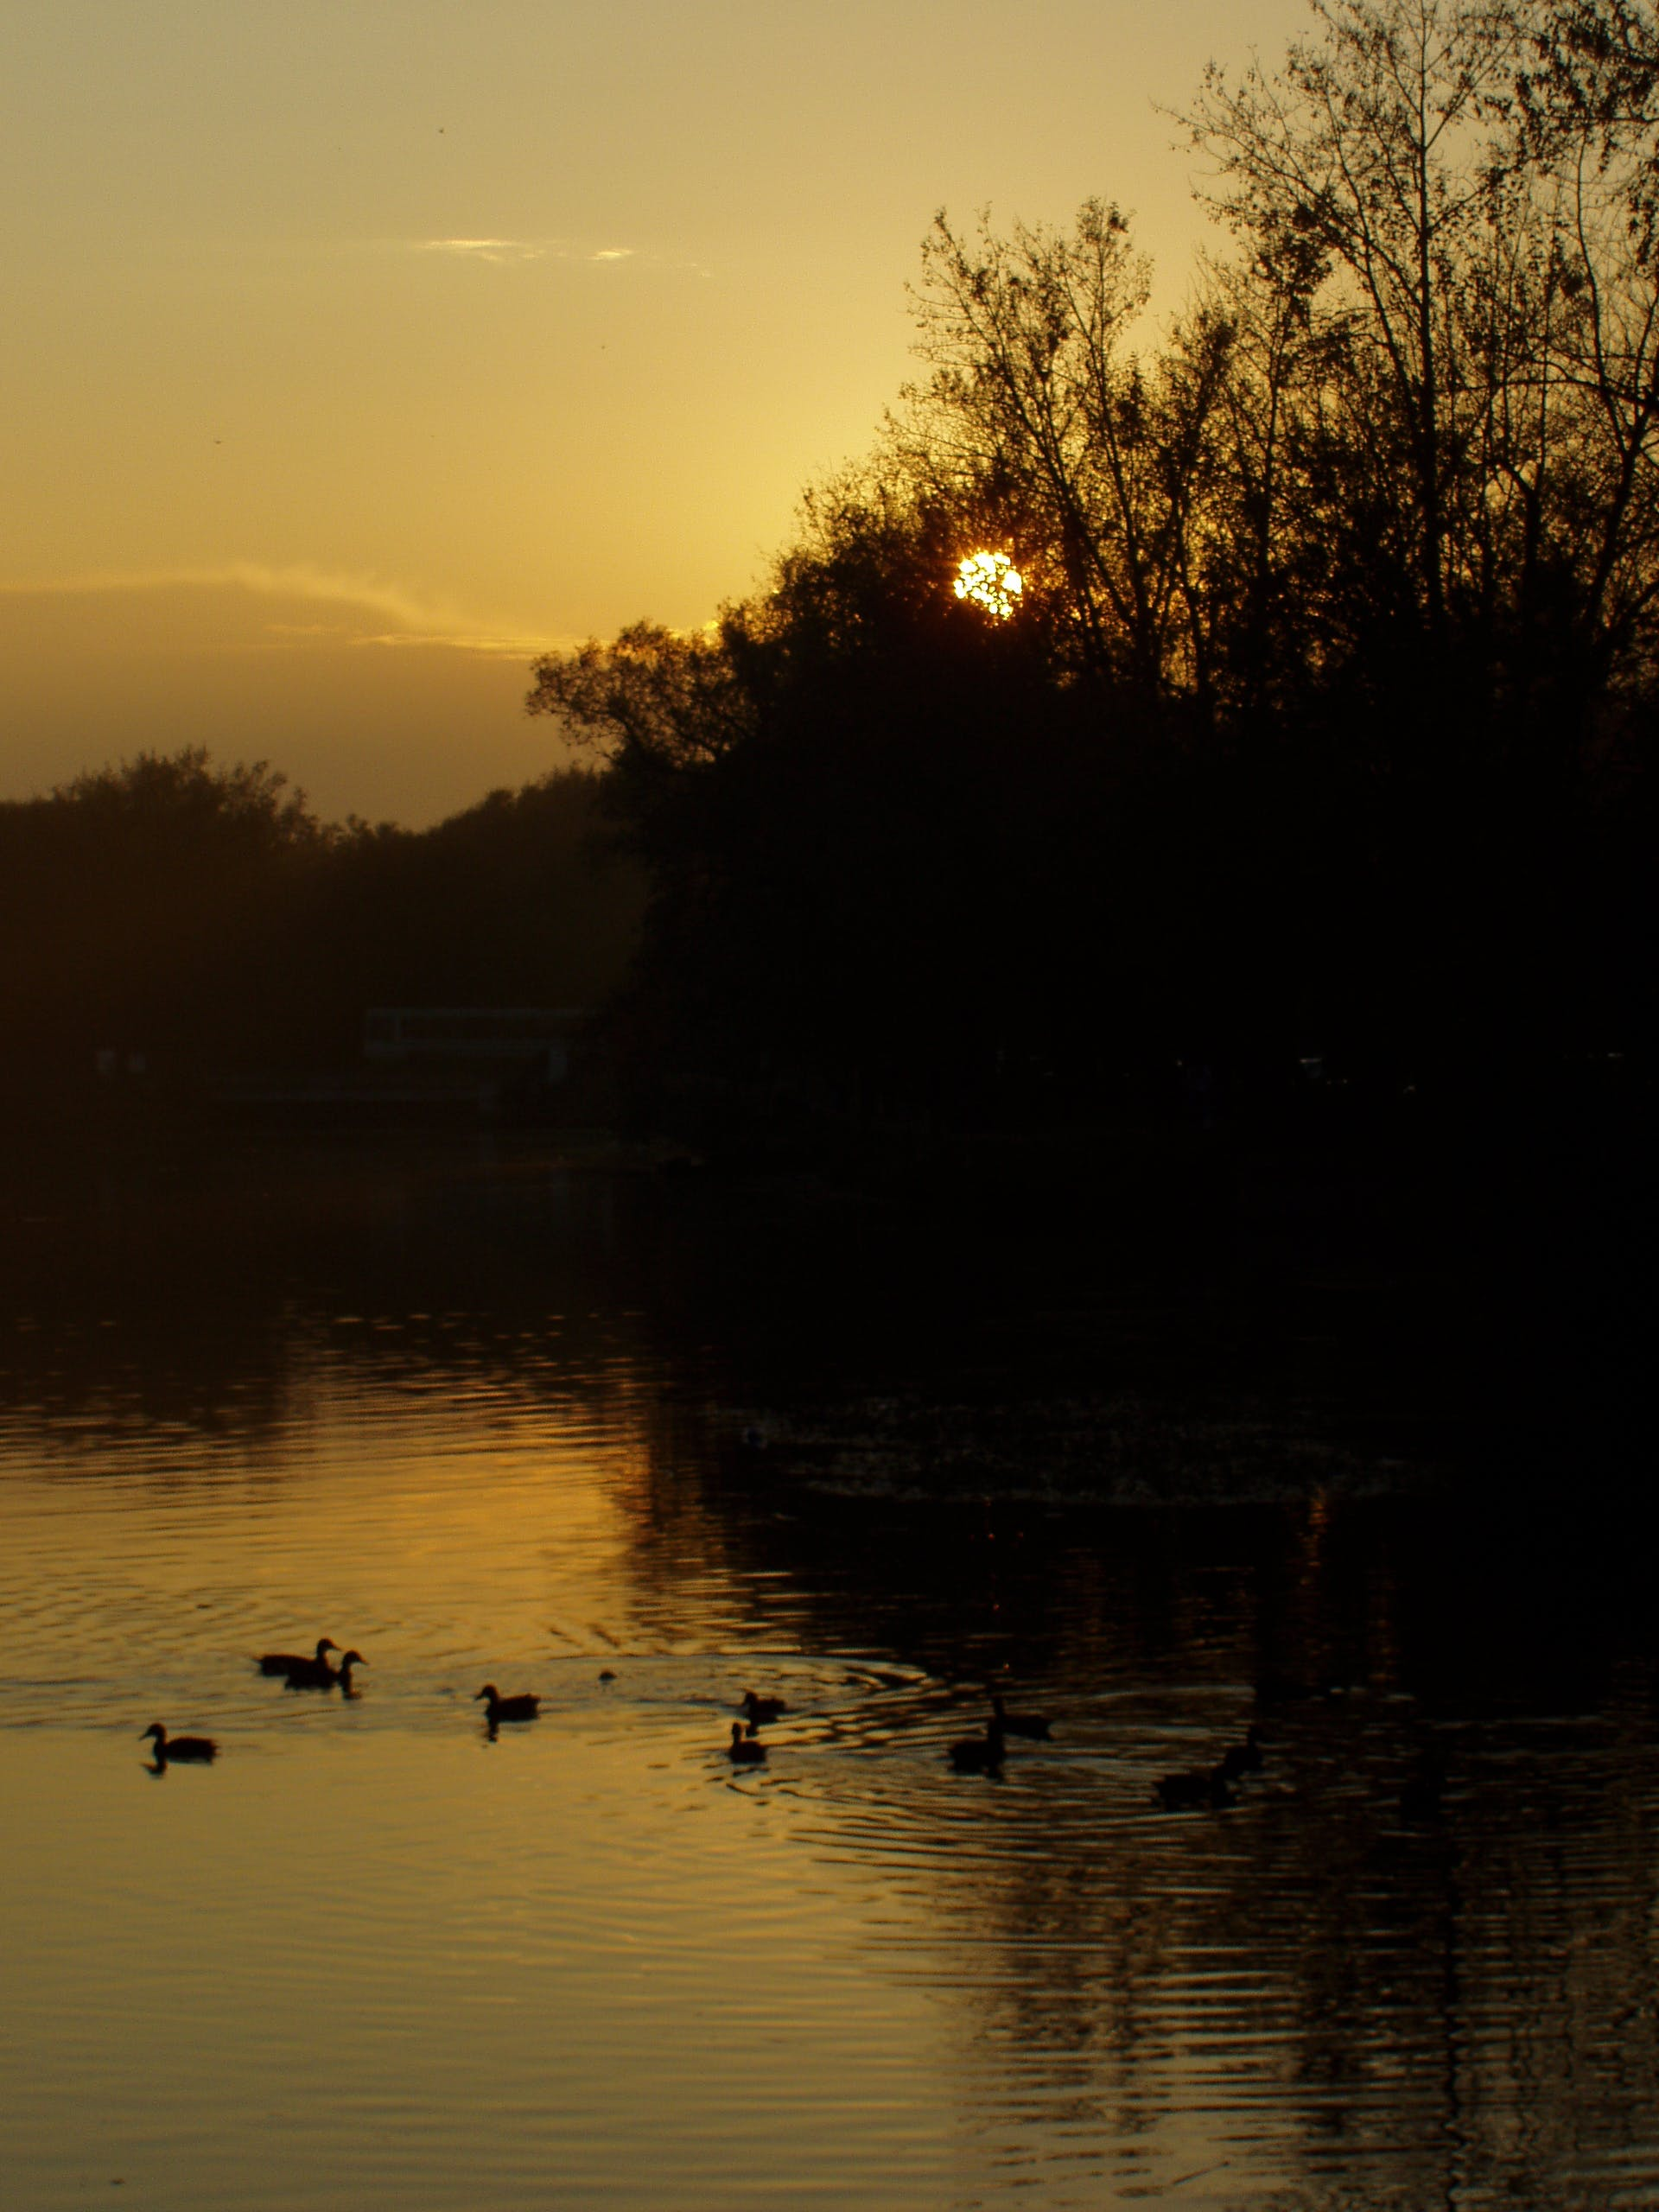 Free stock photo of dark, ducks, evening sky, evening sun